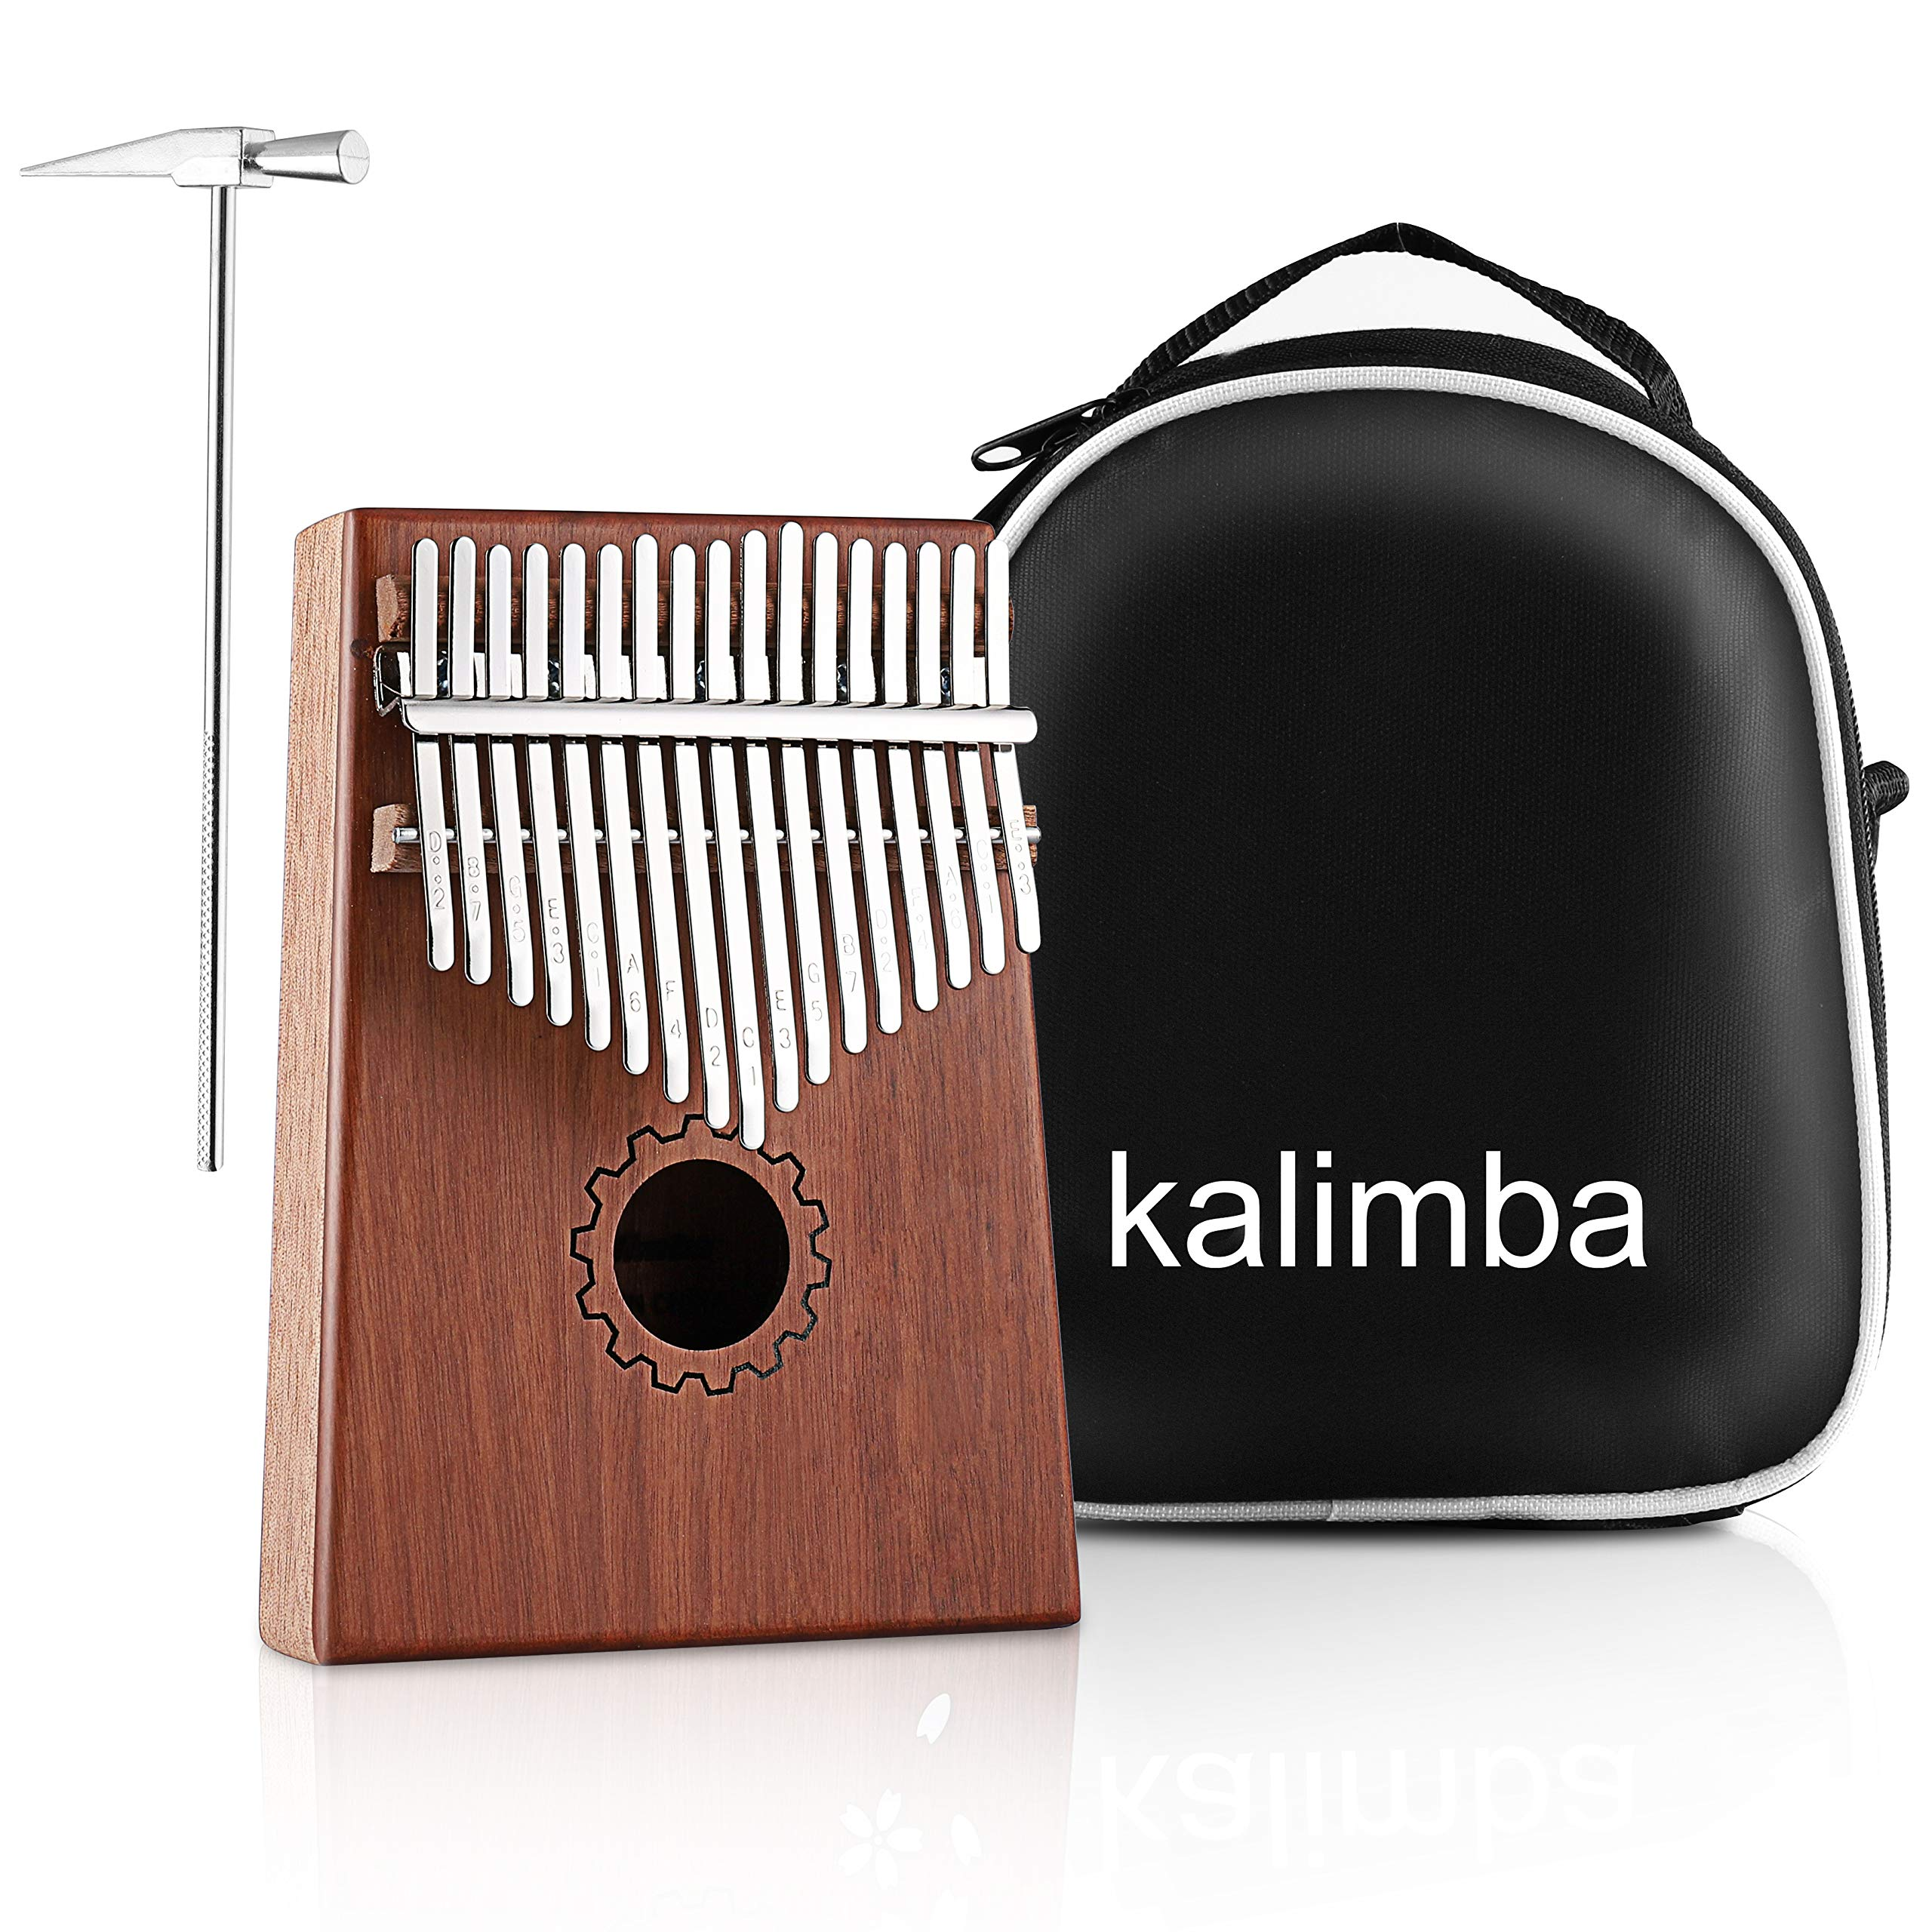 MINGPINHUIUS Kalimba 17 Key Thumb Piano, Mbira Thumb Drive with Bag and Instruction Songbook Portable Musical Instrument for Kids, Friends,Beginners,Music Lovers (Gear)